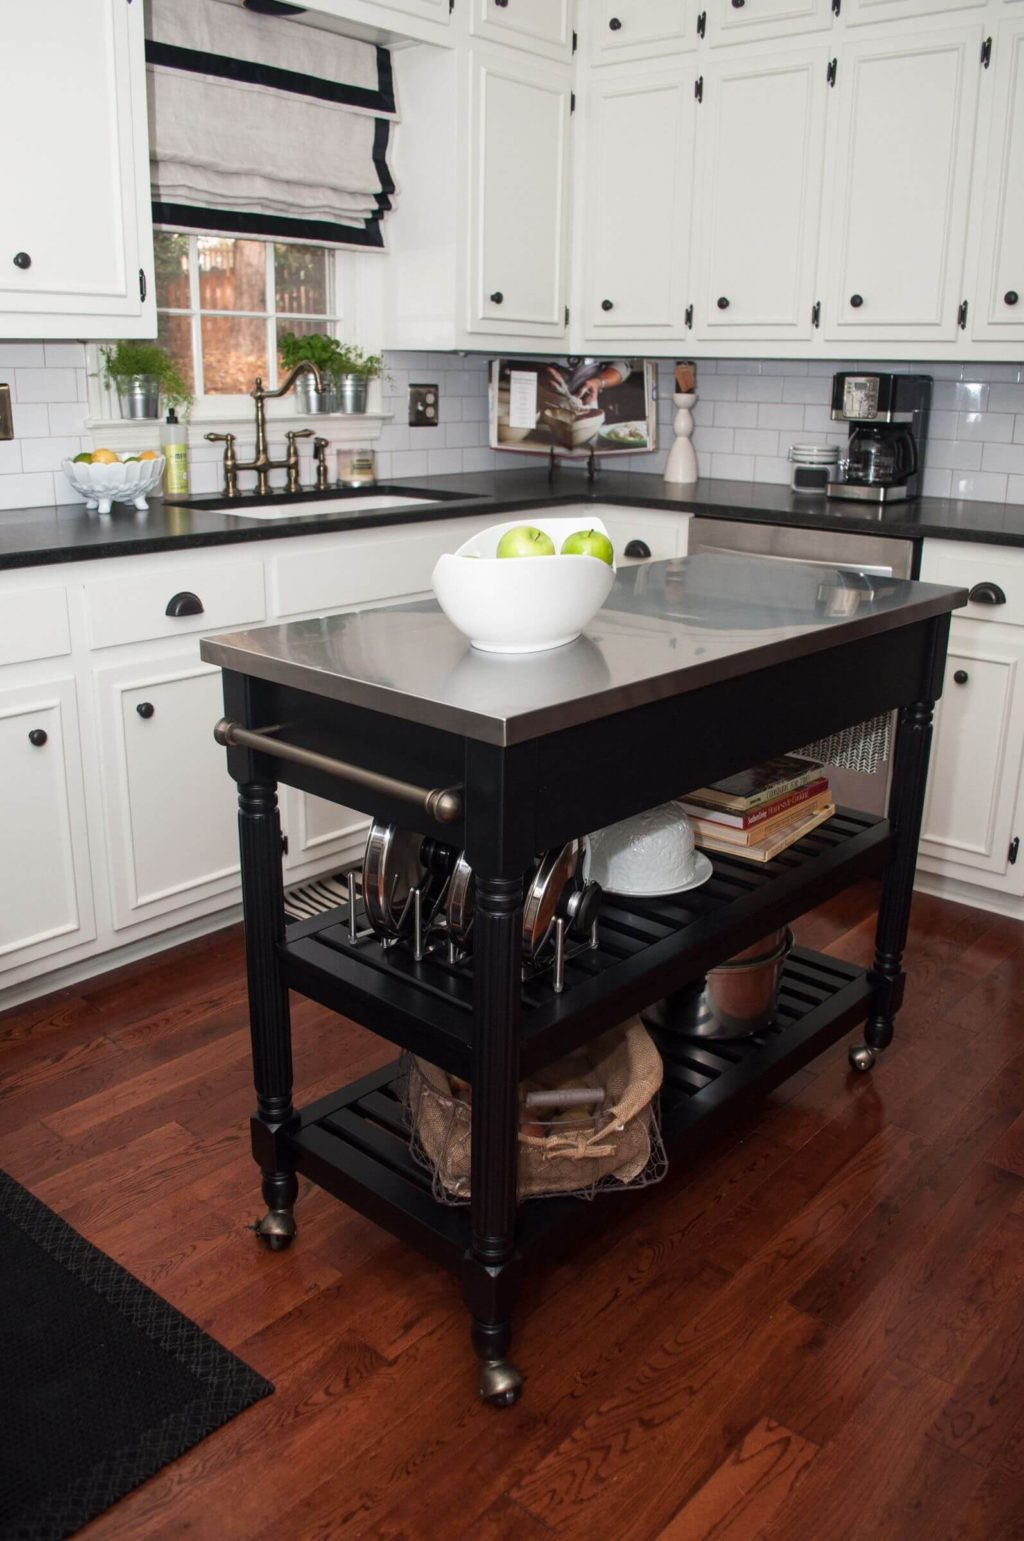 Movable-counter-2-1024x1541 80+ Unusual Kitchen Design Ideas for Small Spaces in 2021